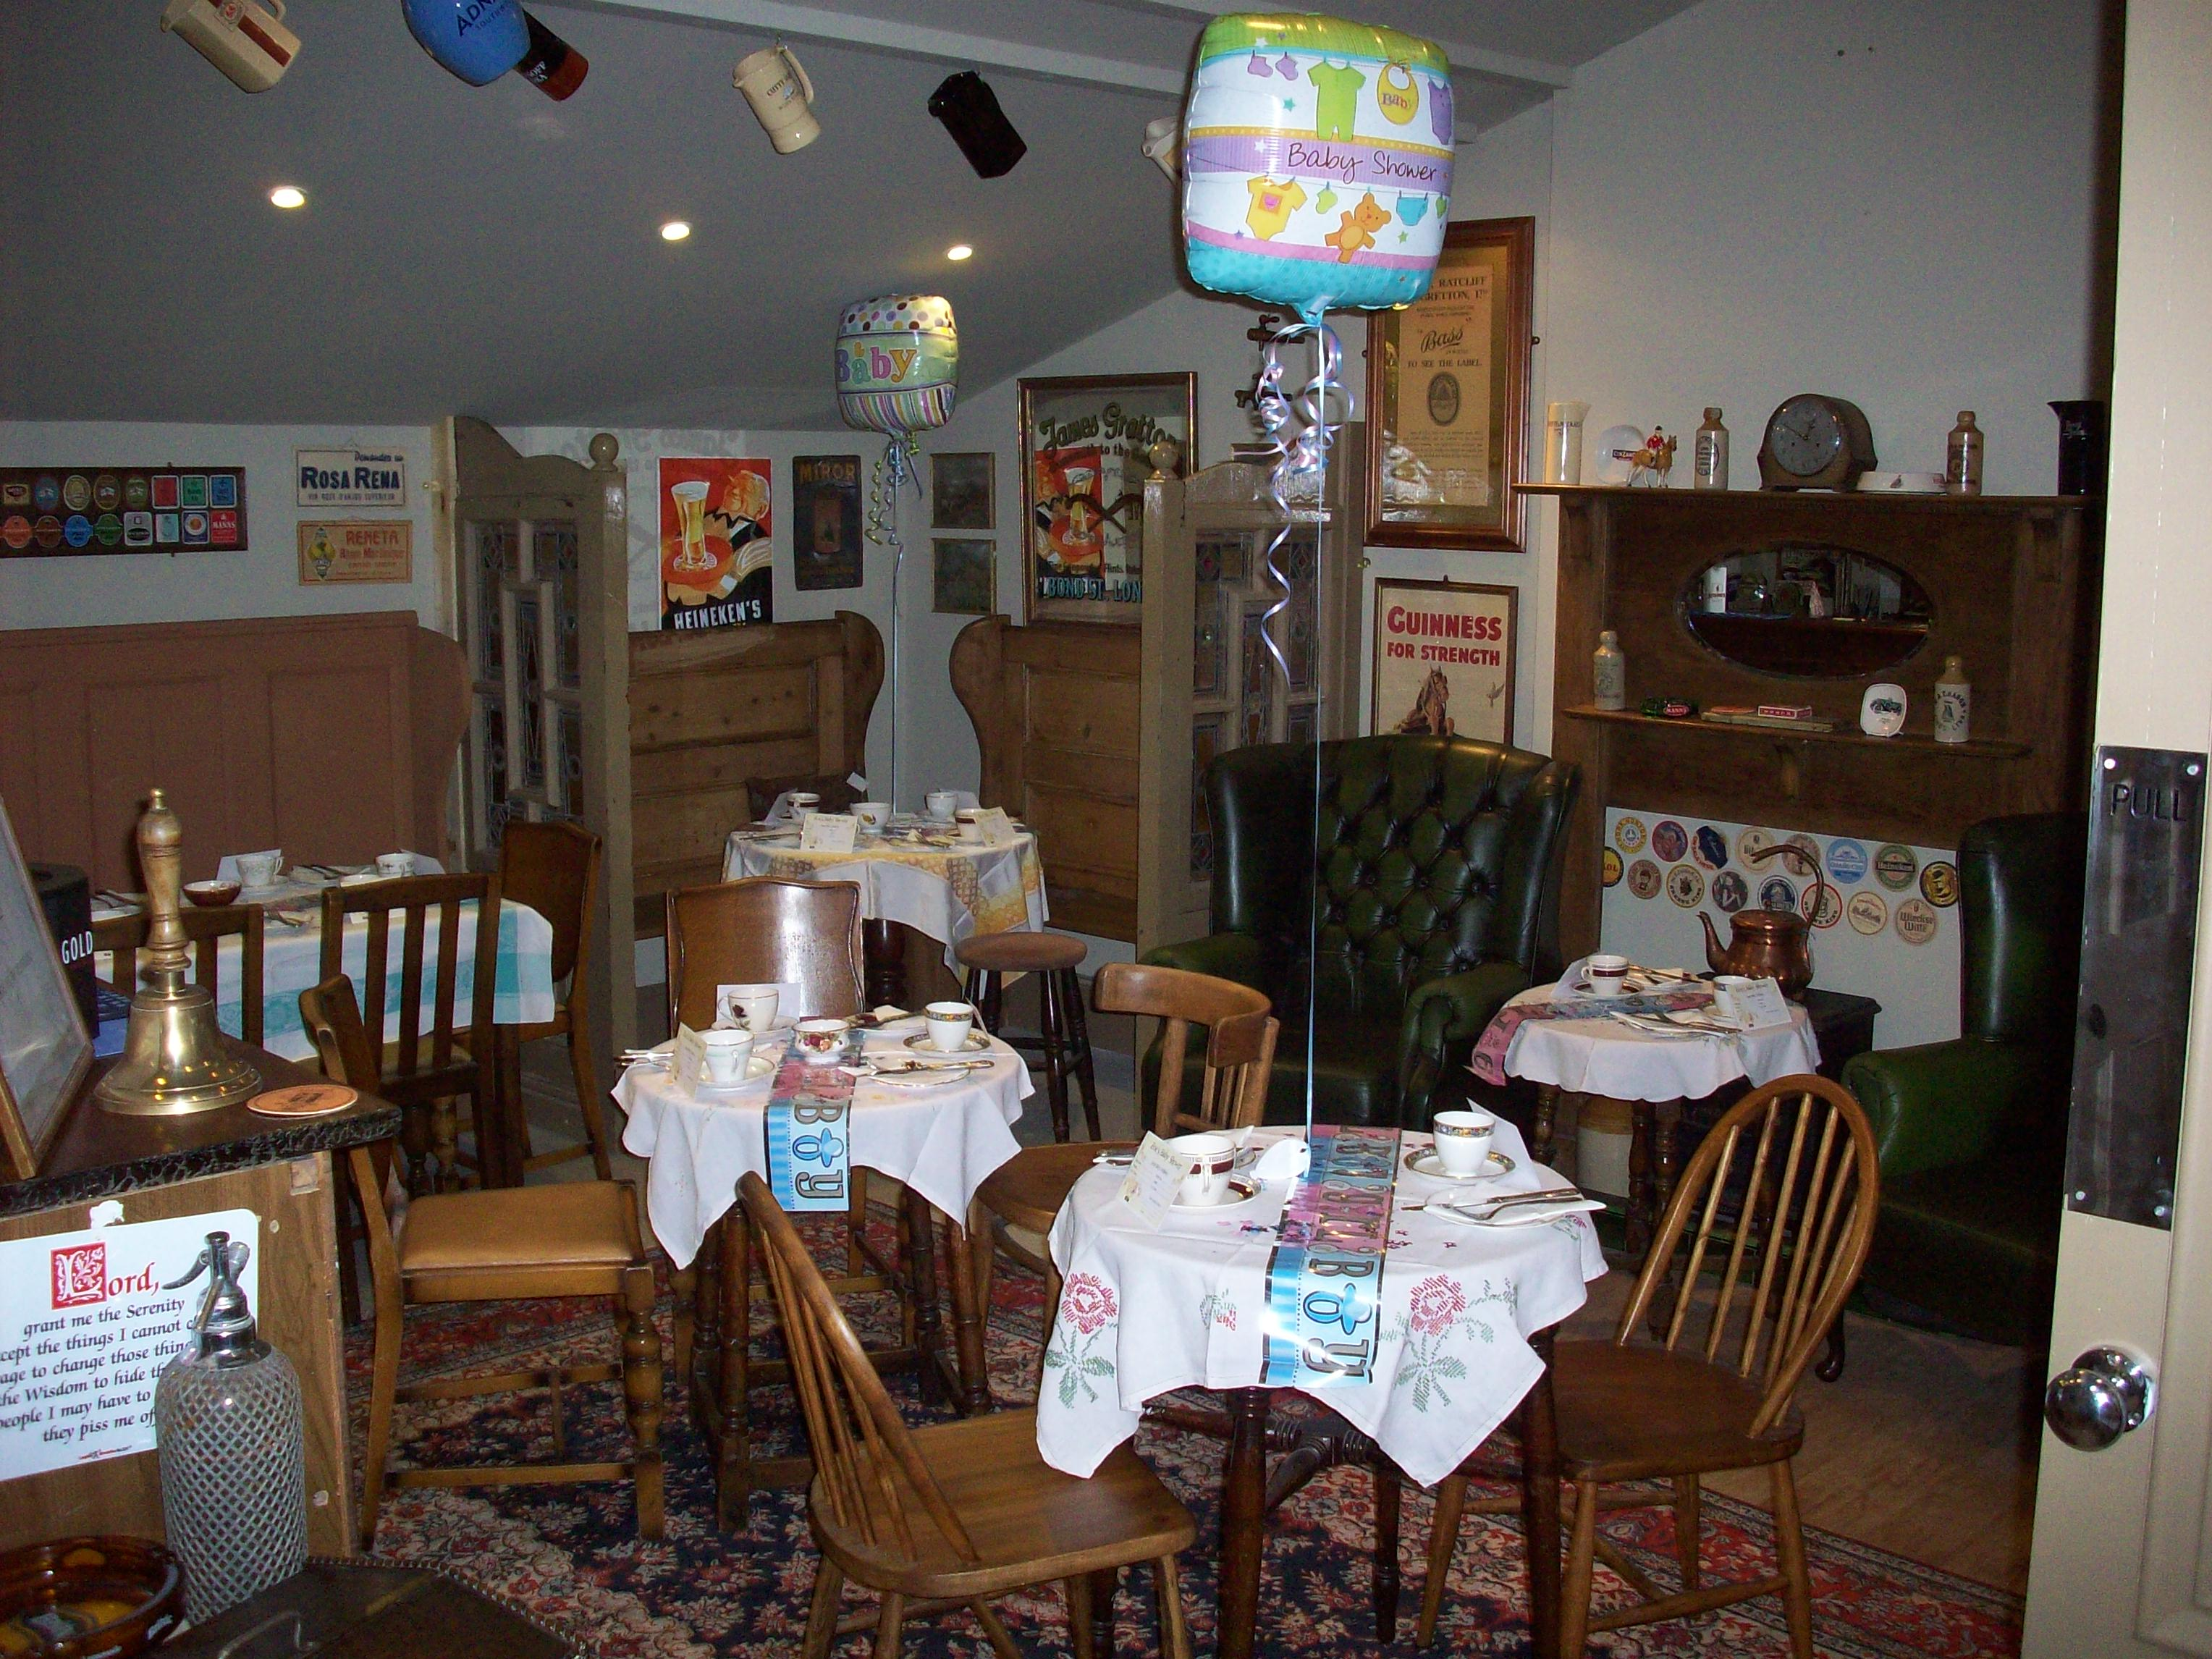 baby shower in the langtry bar harleston cornucopia